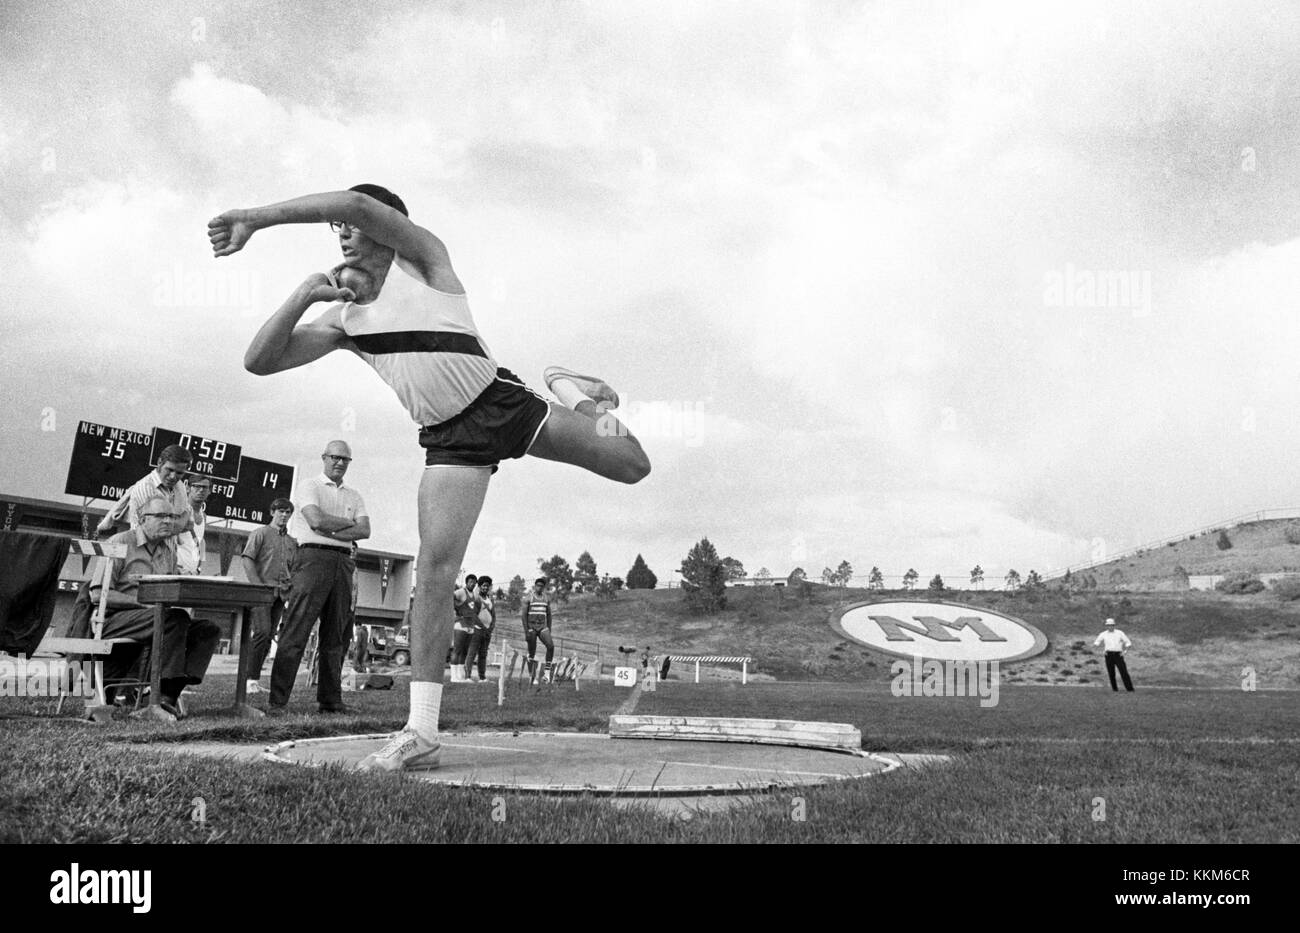 A high school shot putter throws the shot at a state high school track meet in Albuquerque, New Mexico - Stock Image